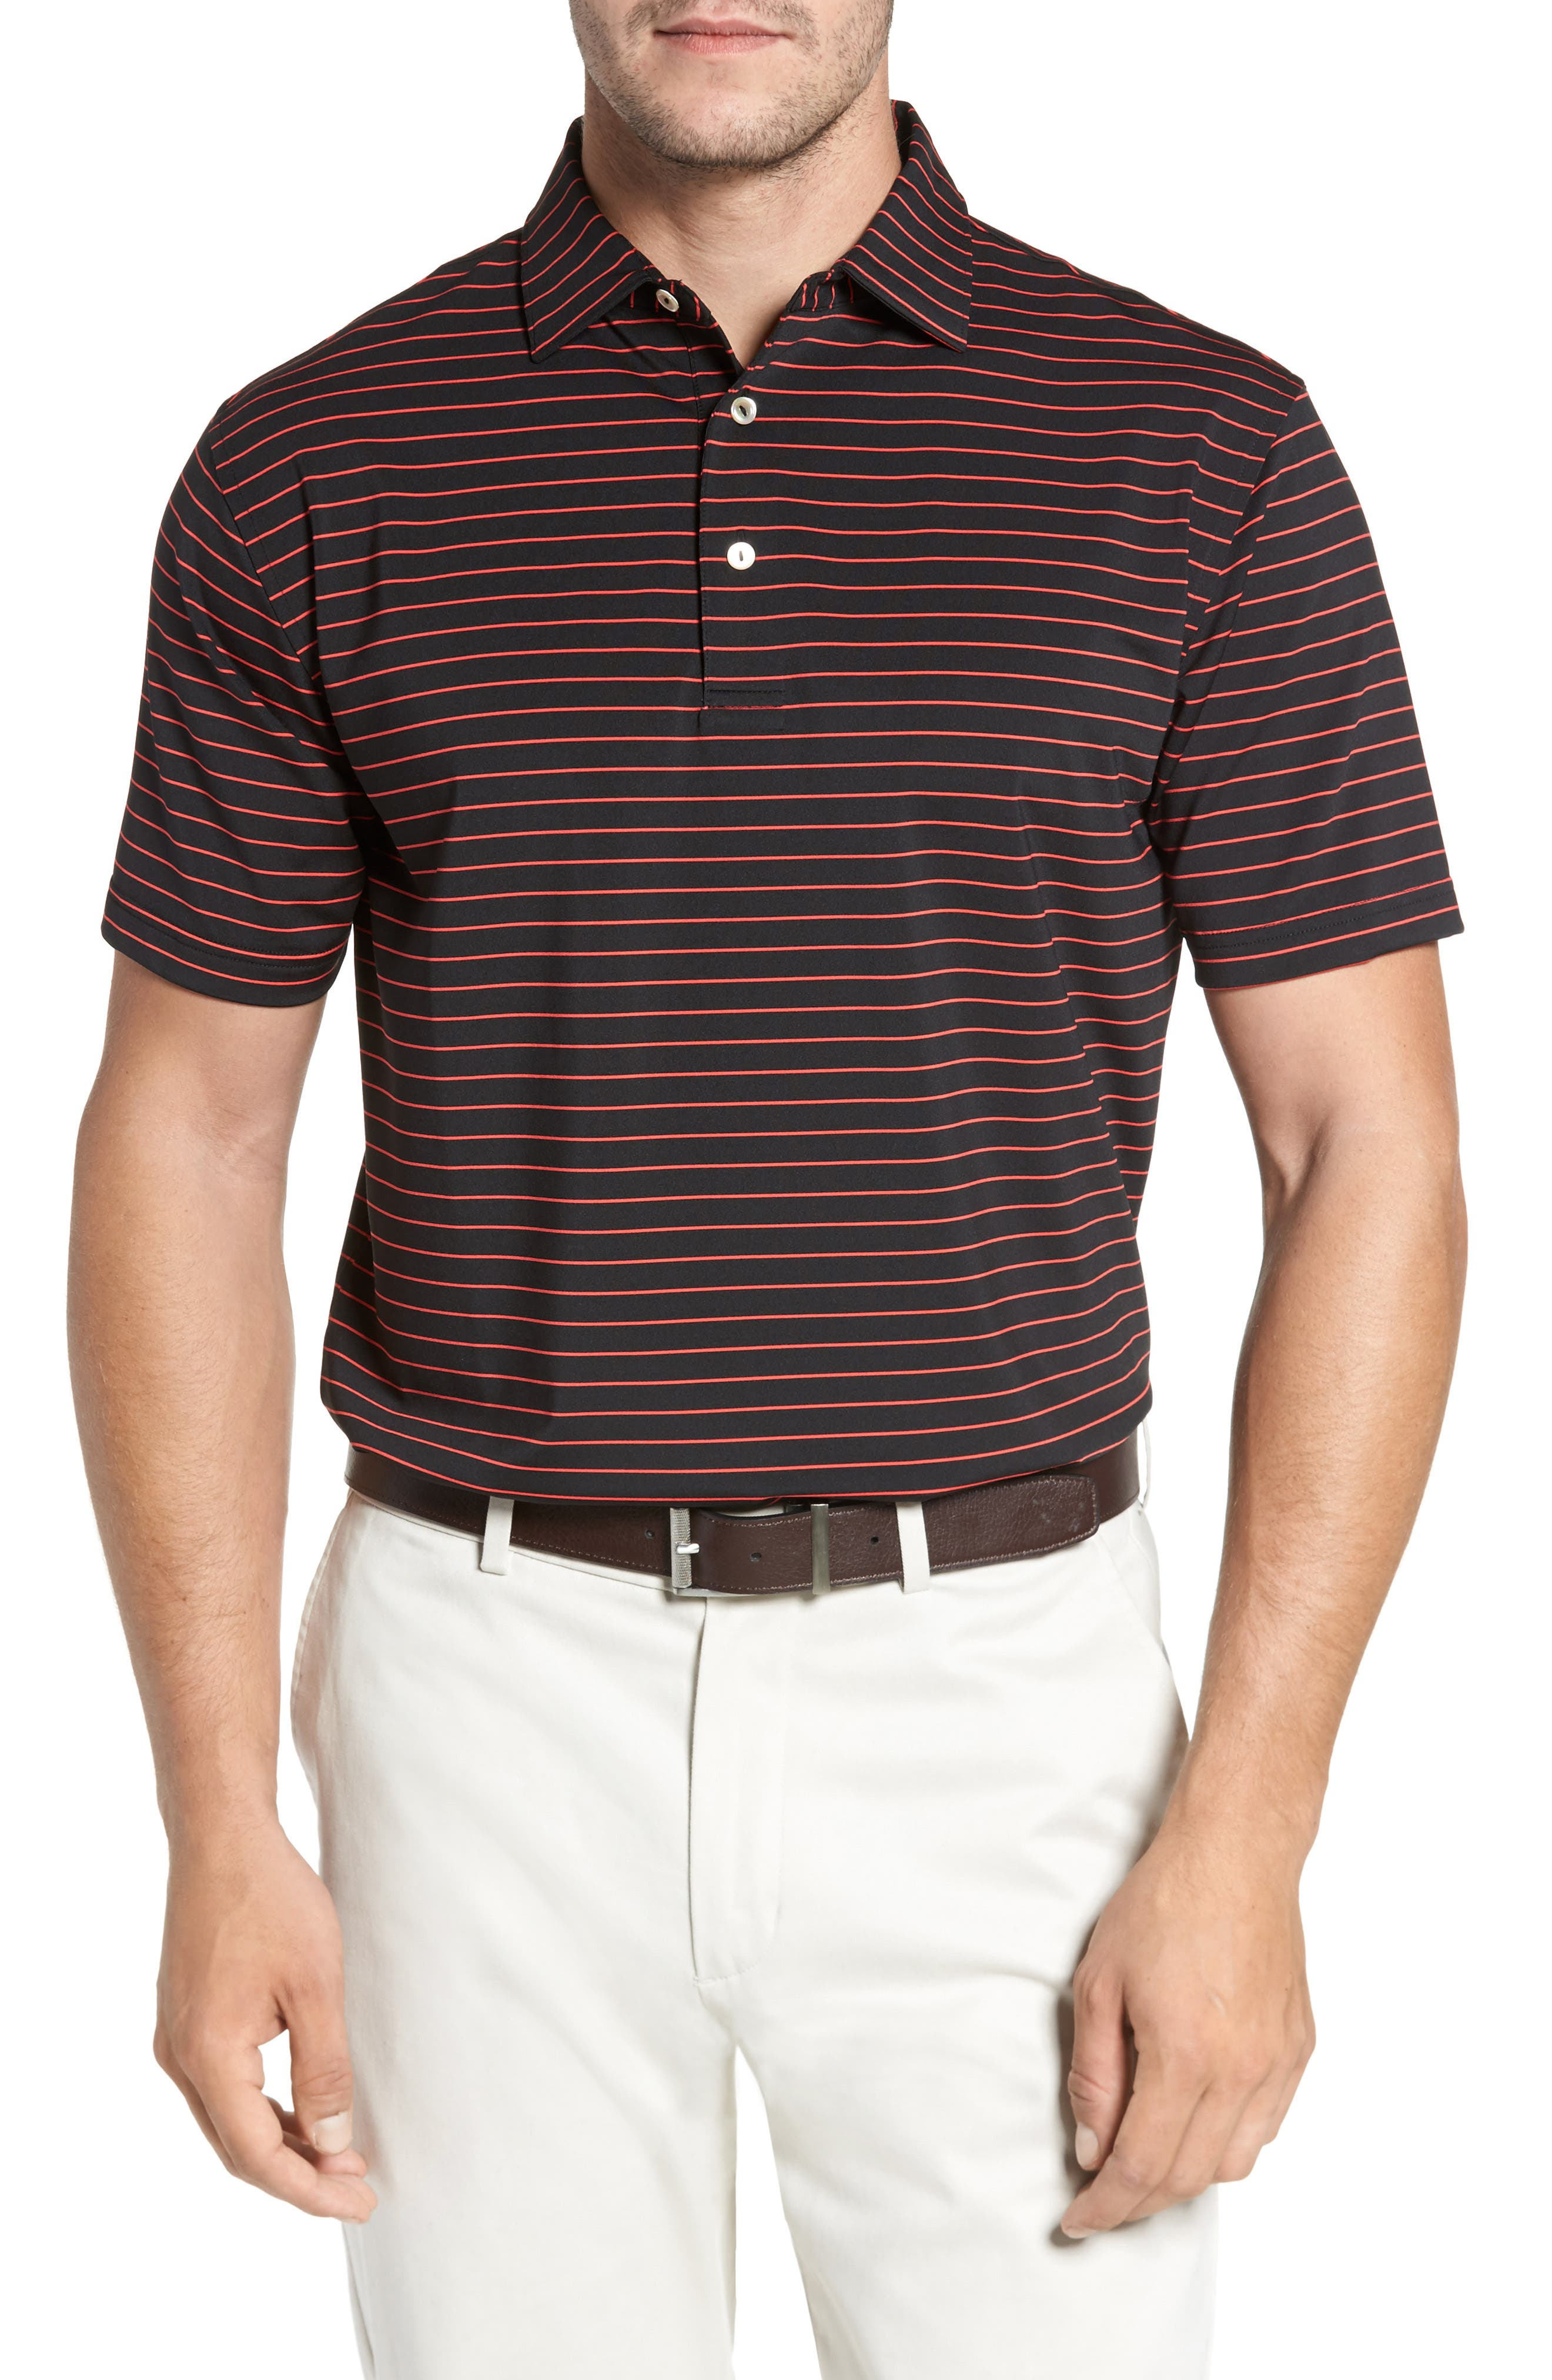 Halifax Pinstripe Stretch Jersey Polo,                             Main thumbnail 1, color,                             001